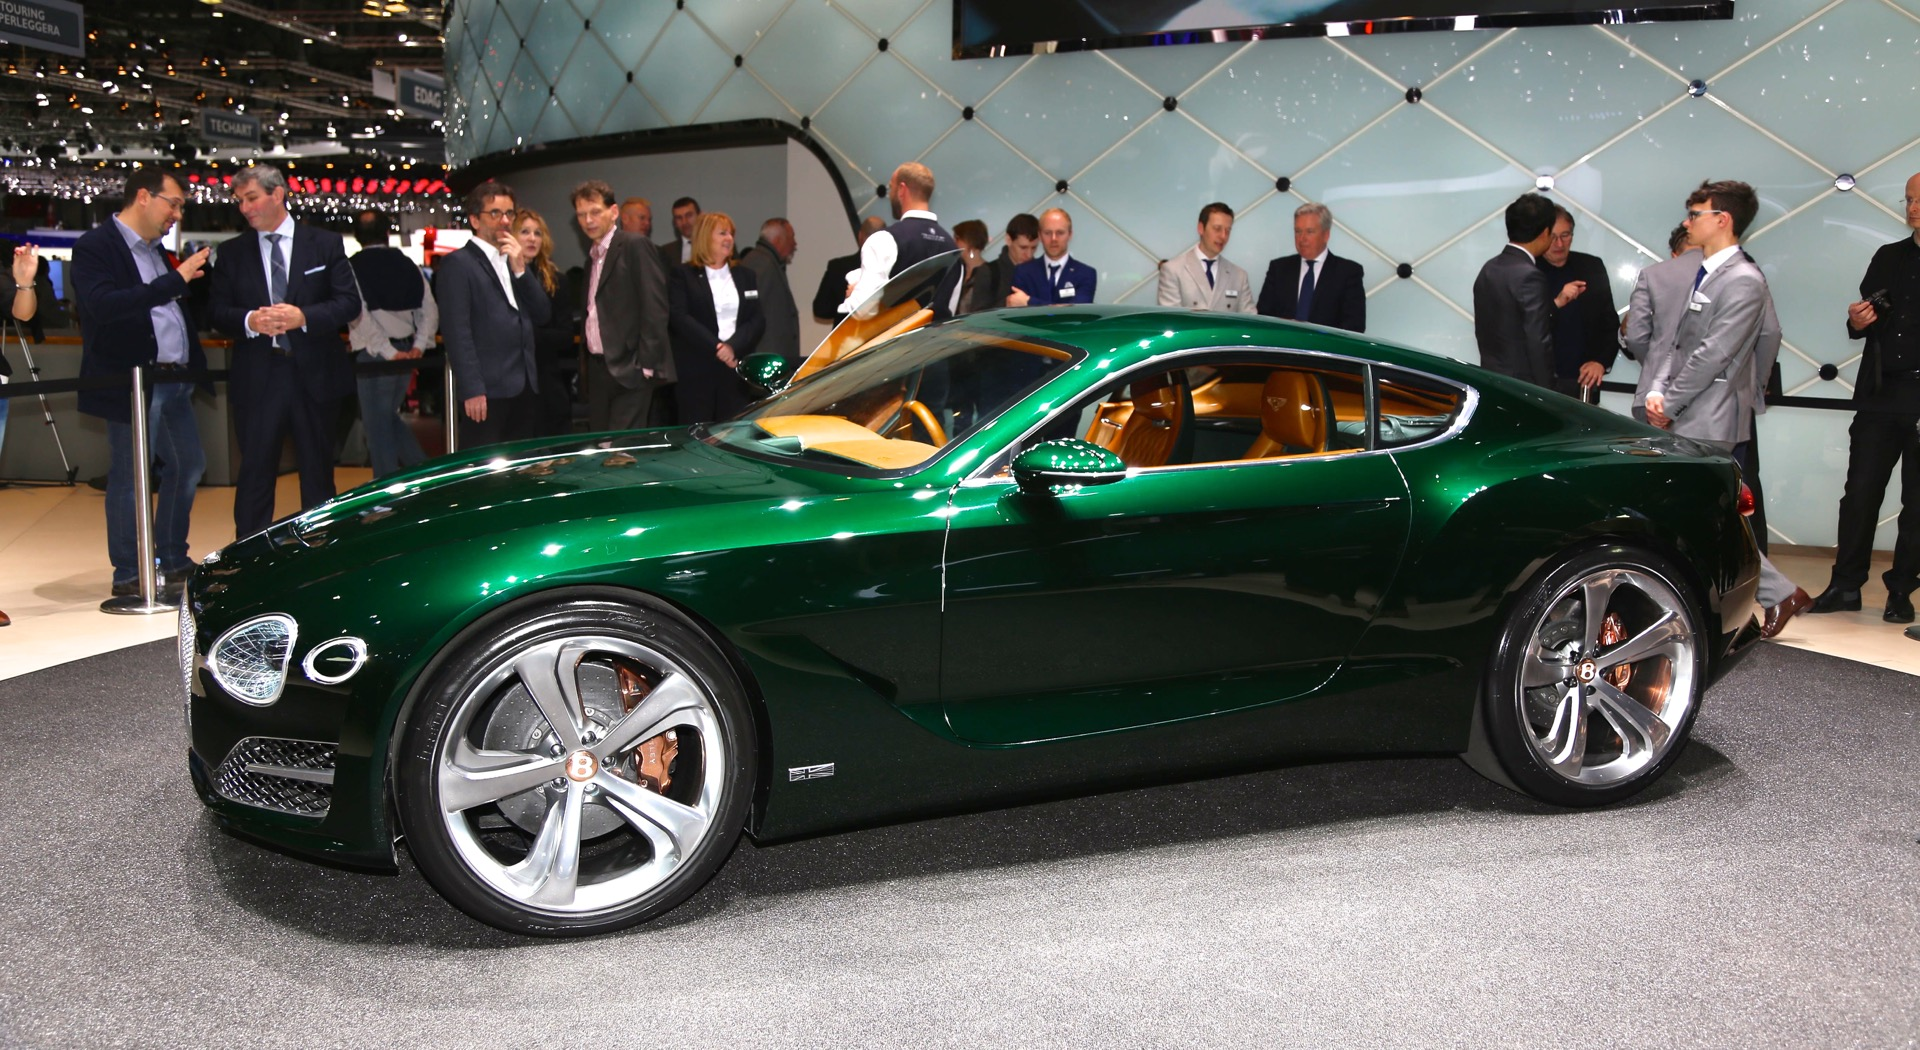 1097059 new Exp 10 Speed 6 Concept Hints At Potential Bentley Sports Car on c63 amg convertible